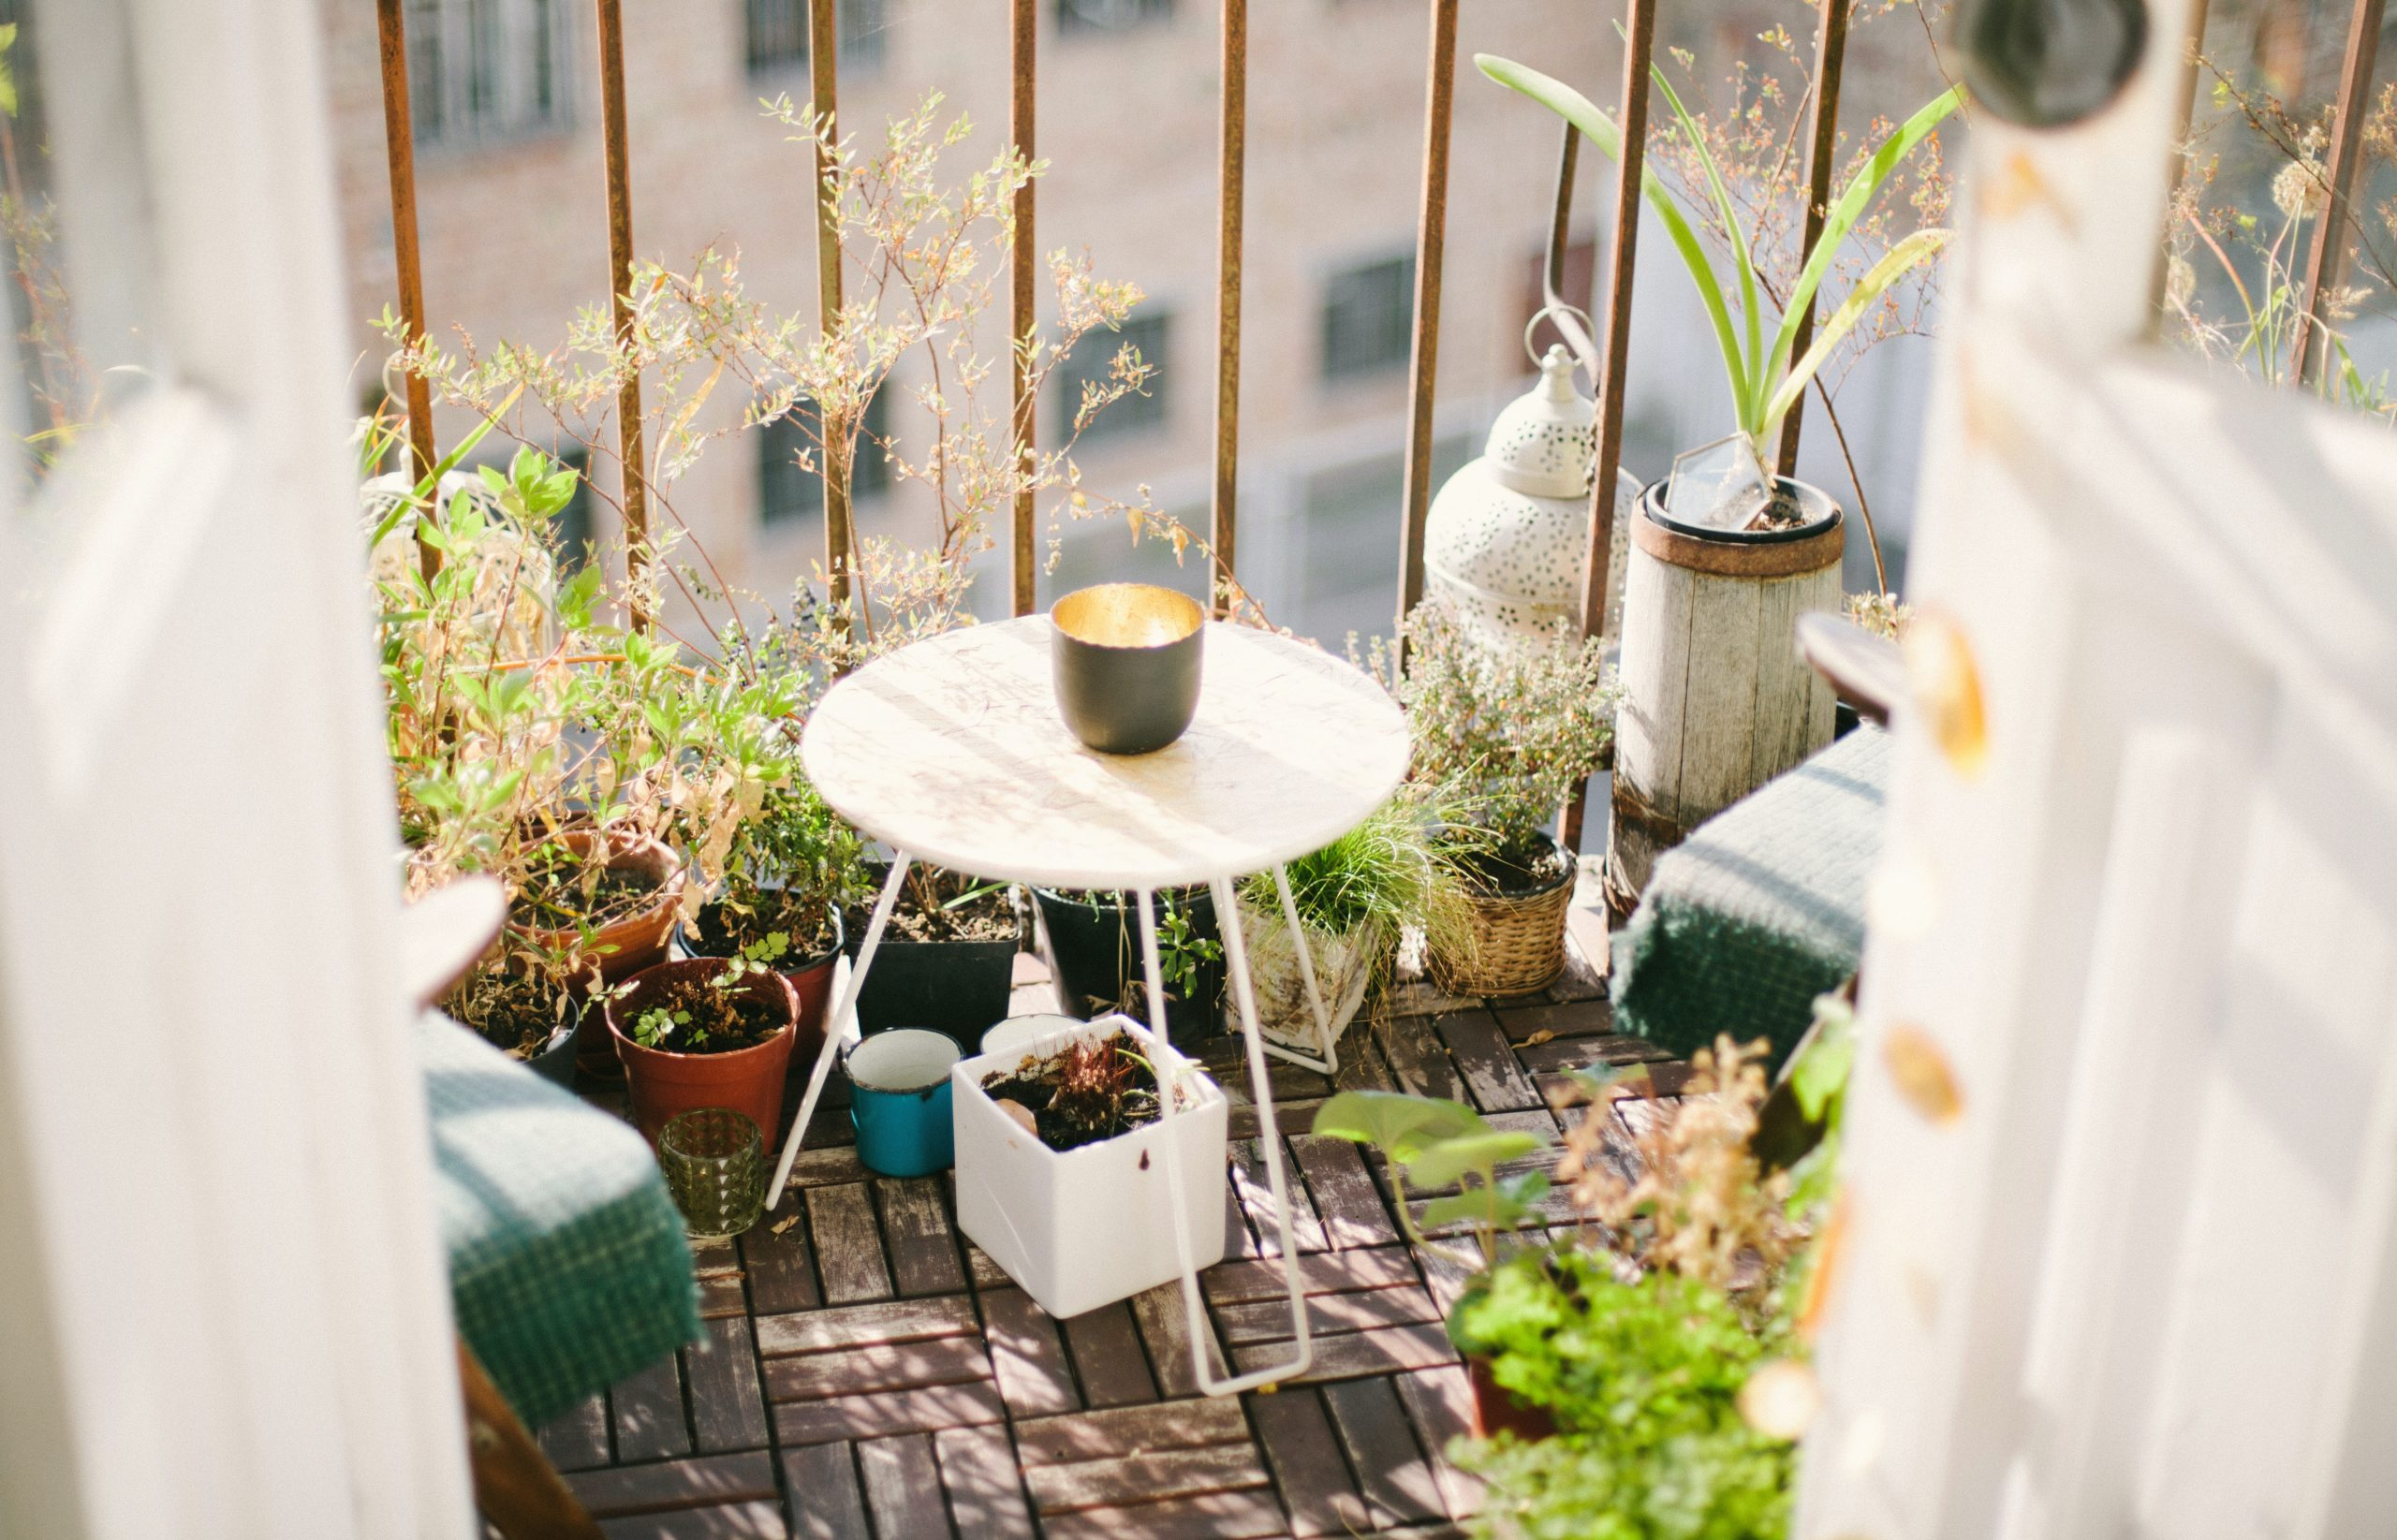 Well-decorated terrace in the city